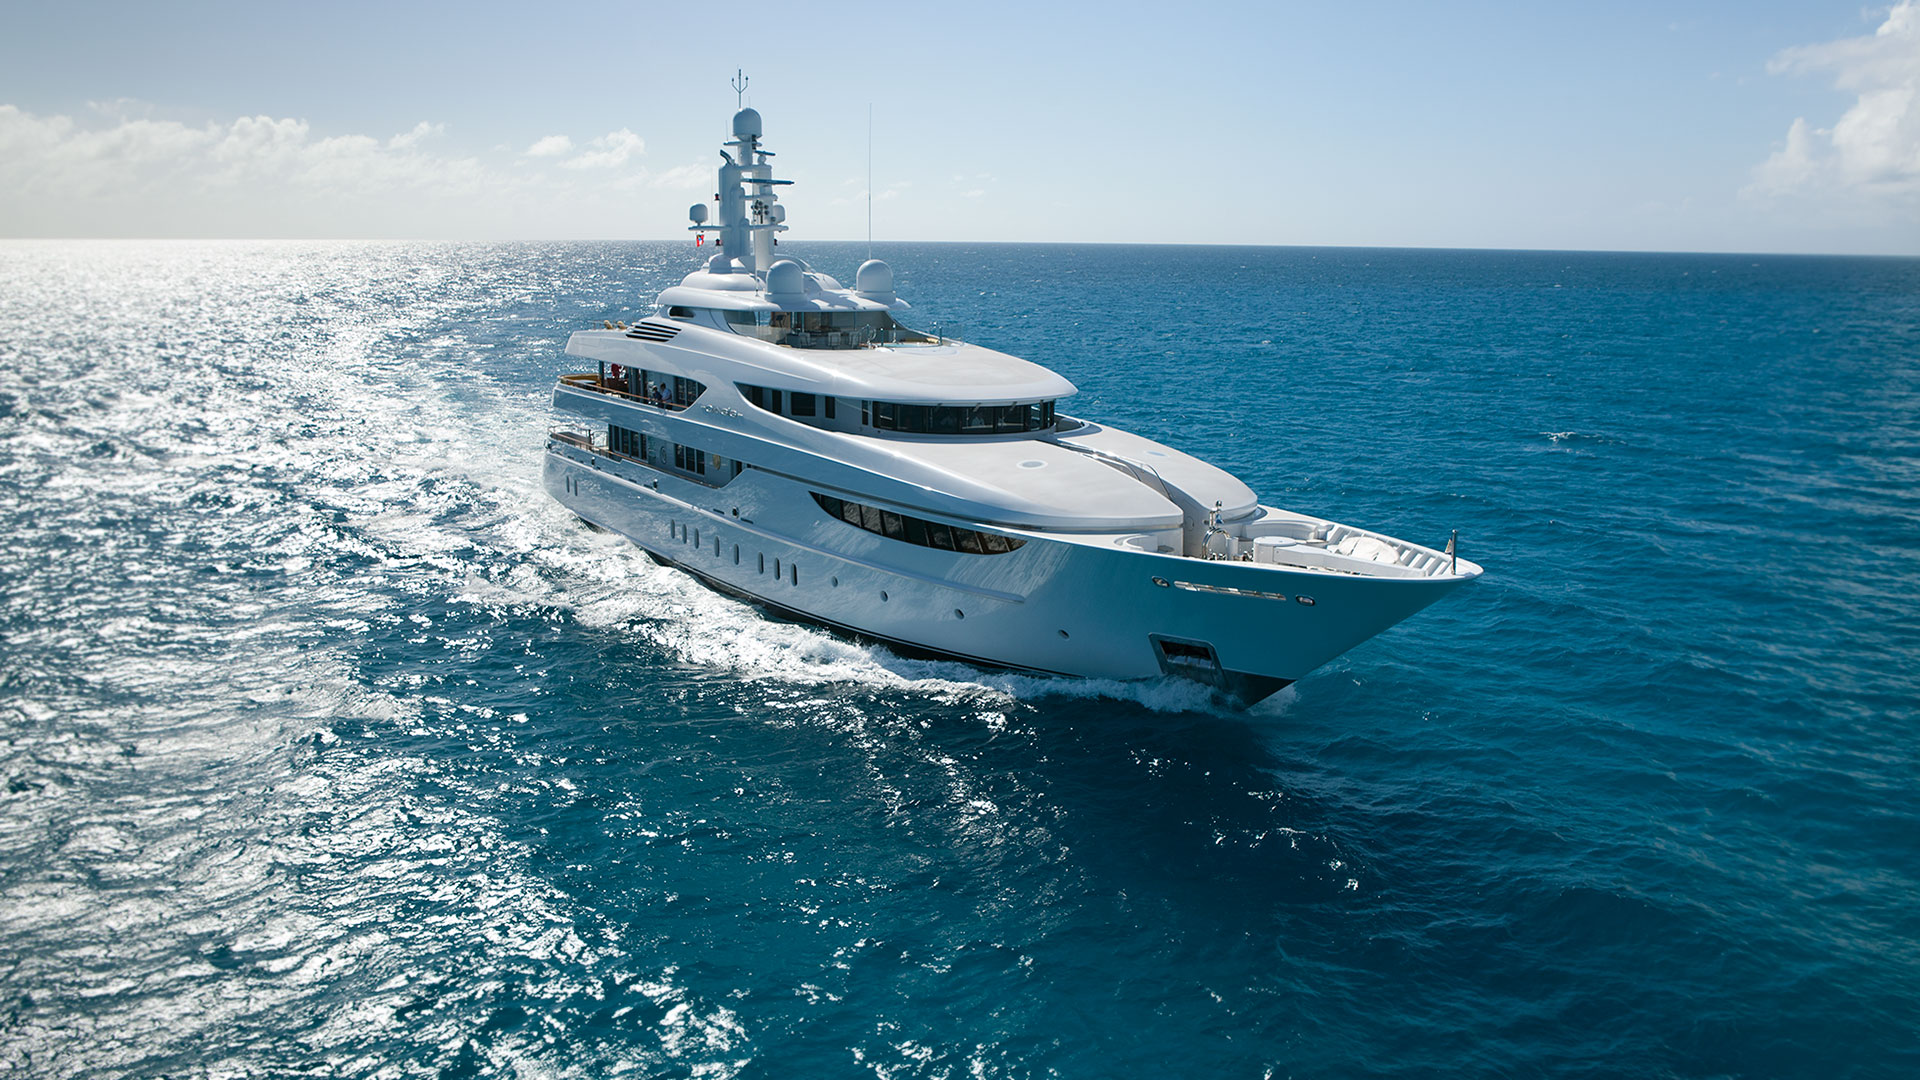 Yacht support Auckland Pacific superyacht agency